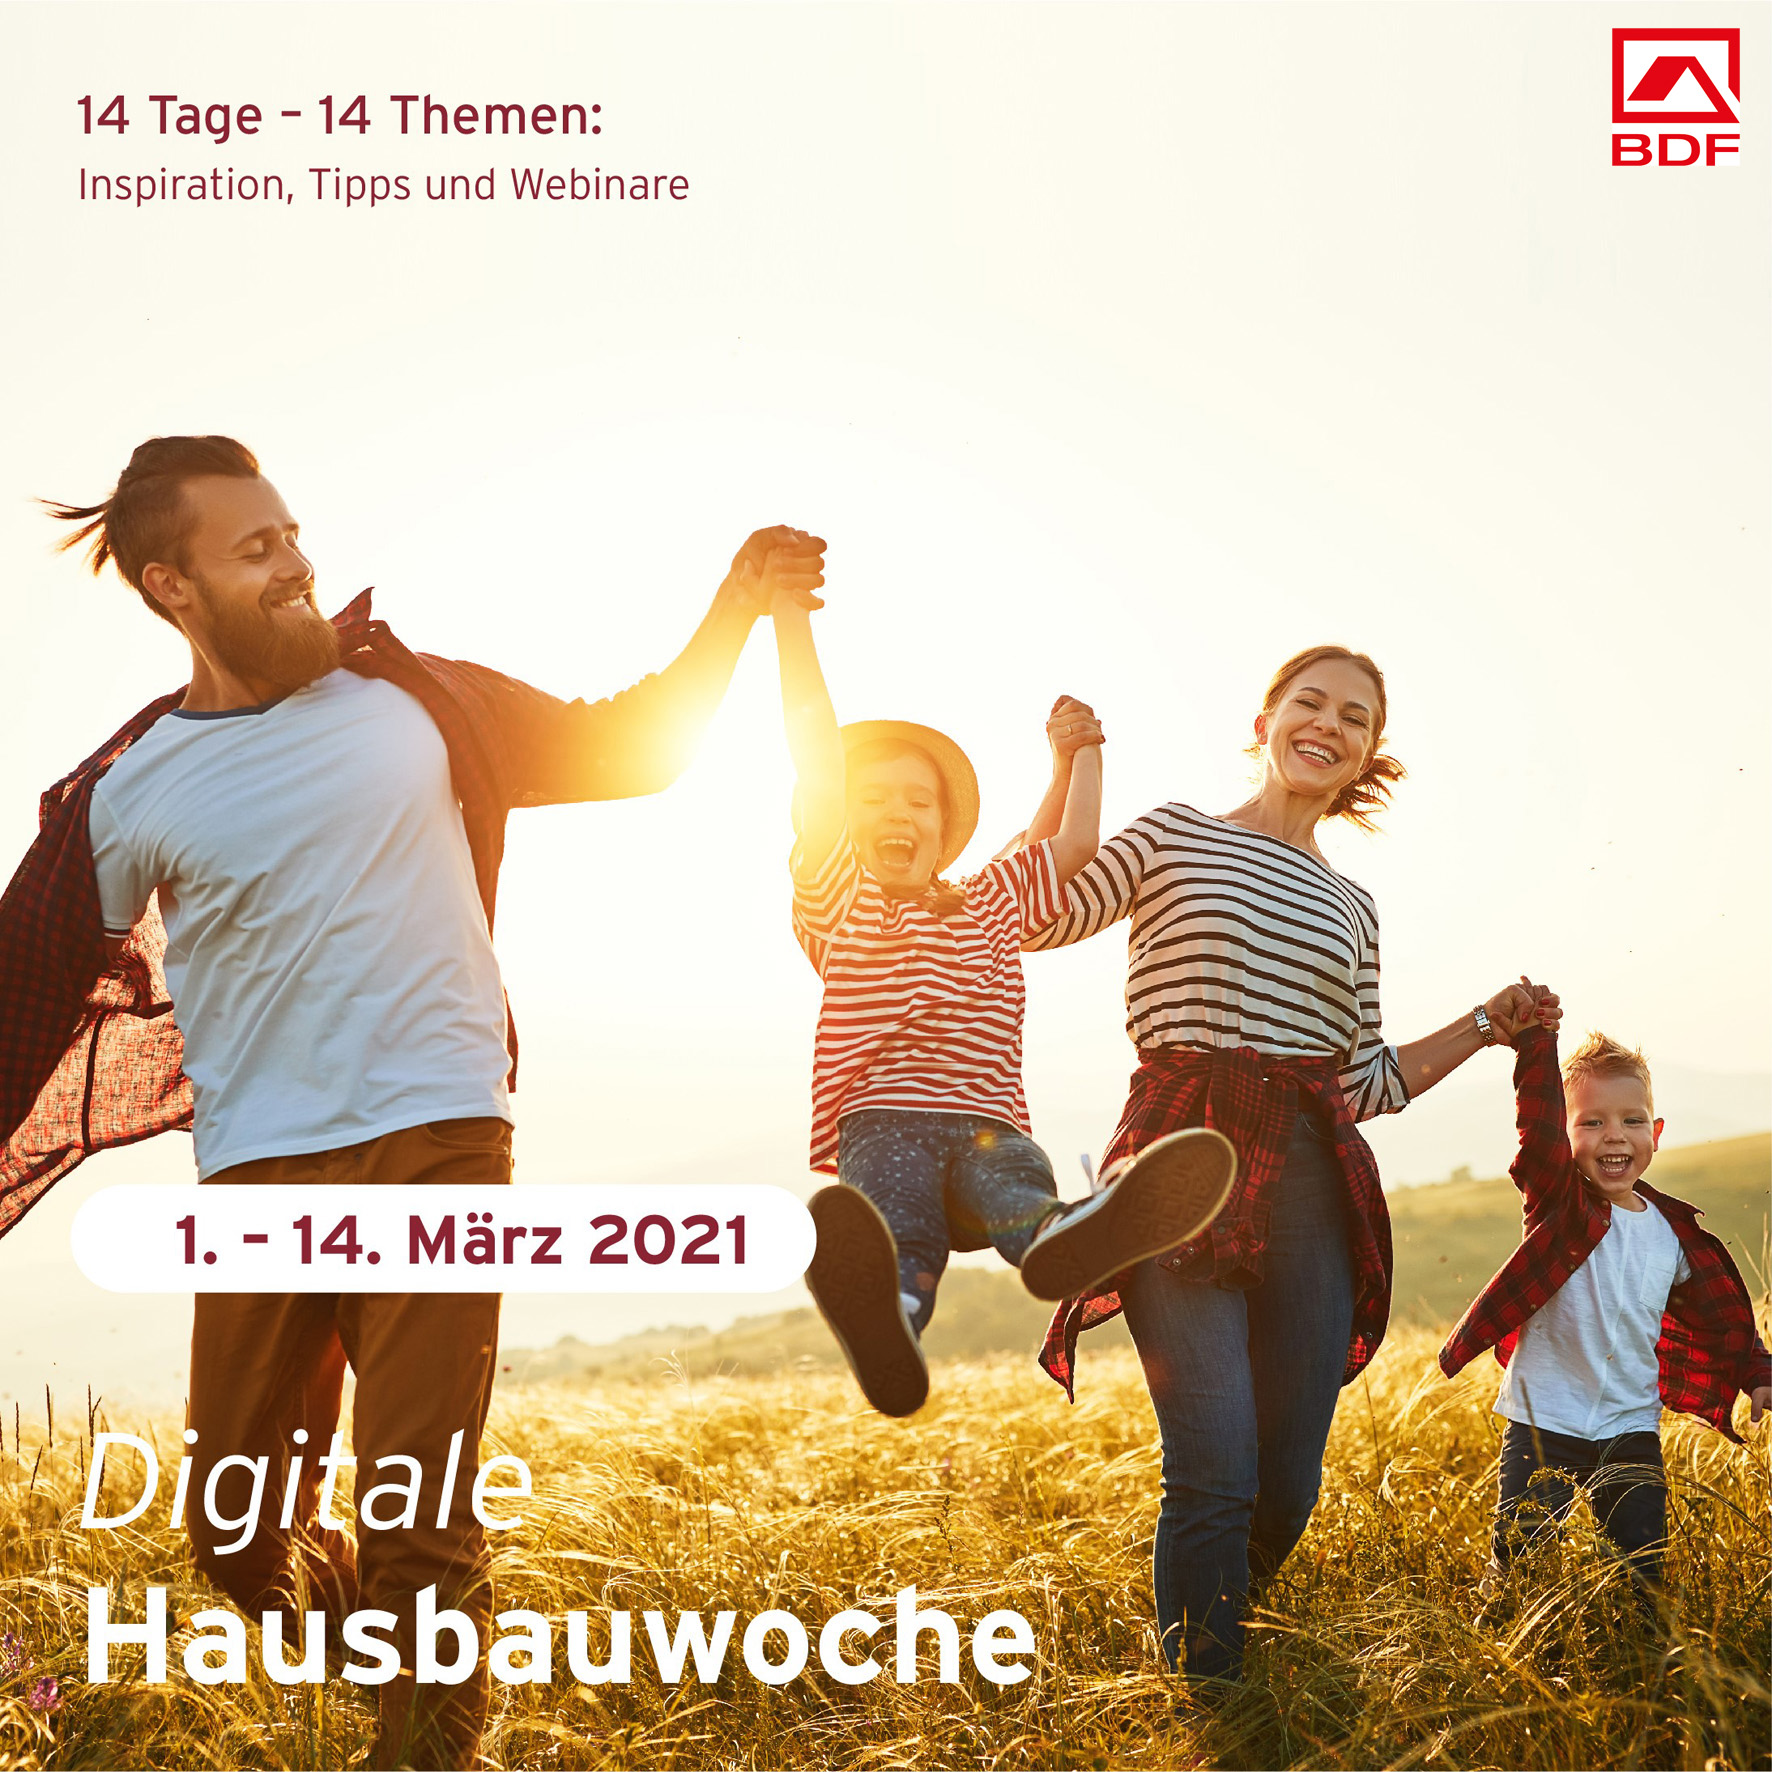 PM-2021-BDF-Digitale-Hausbauwoche